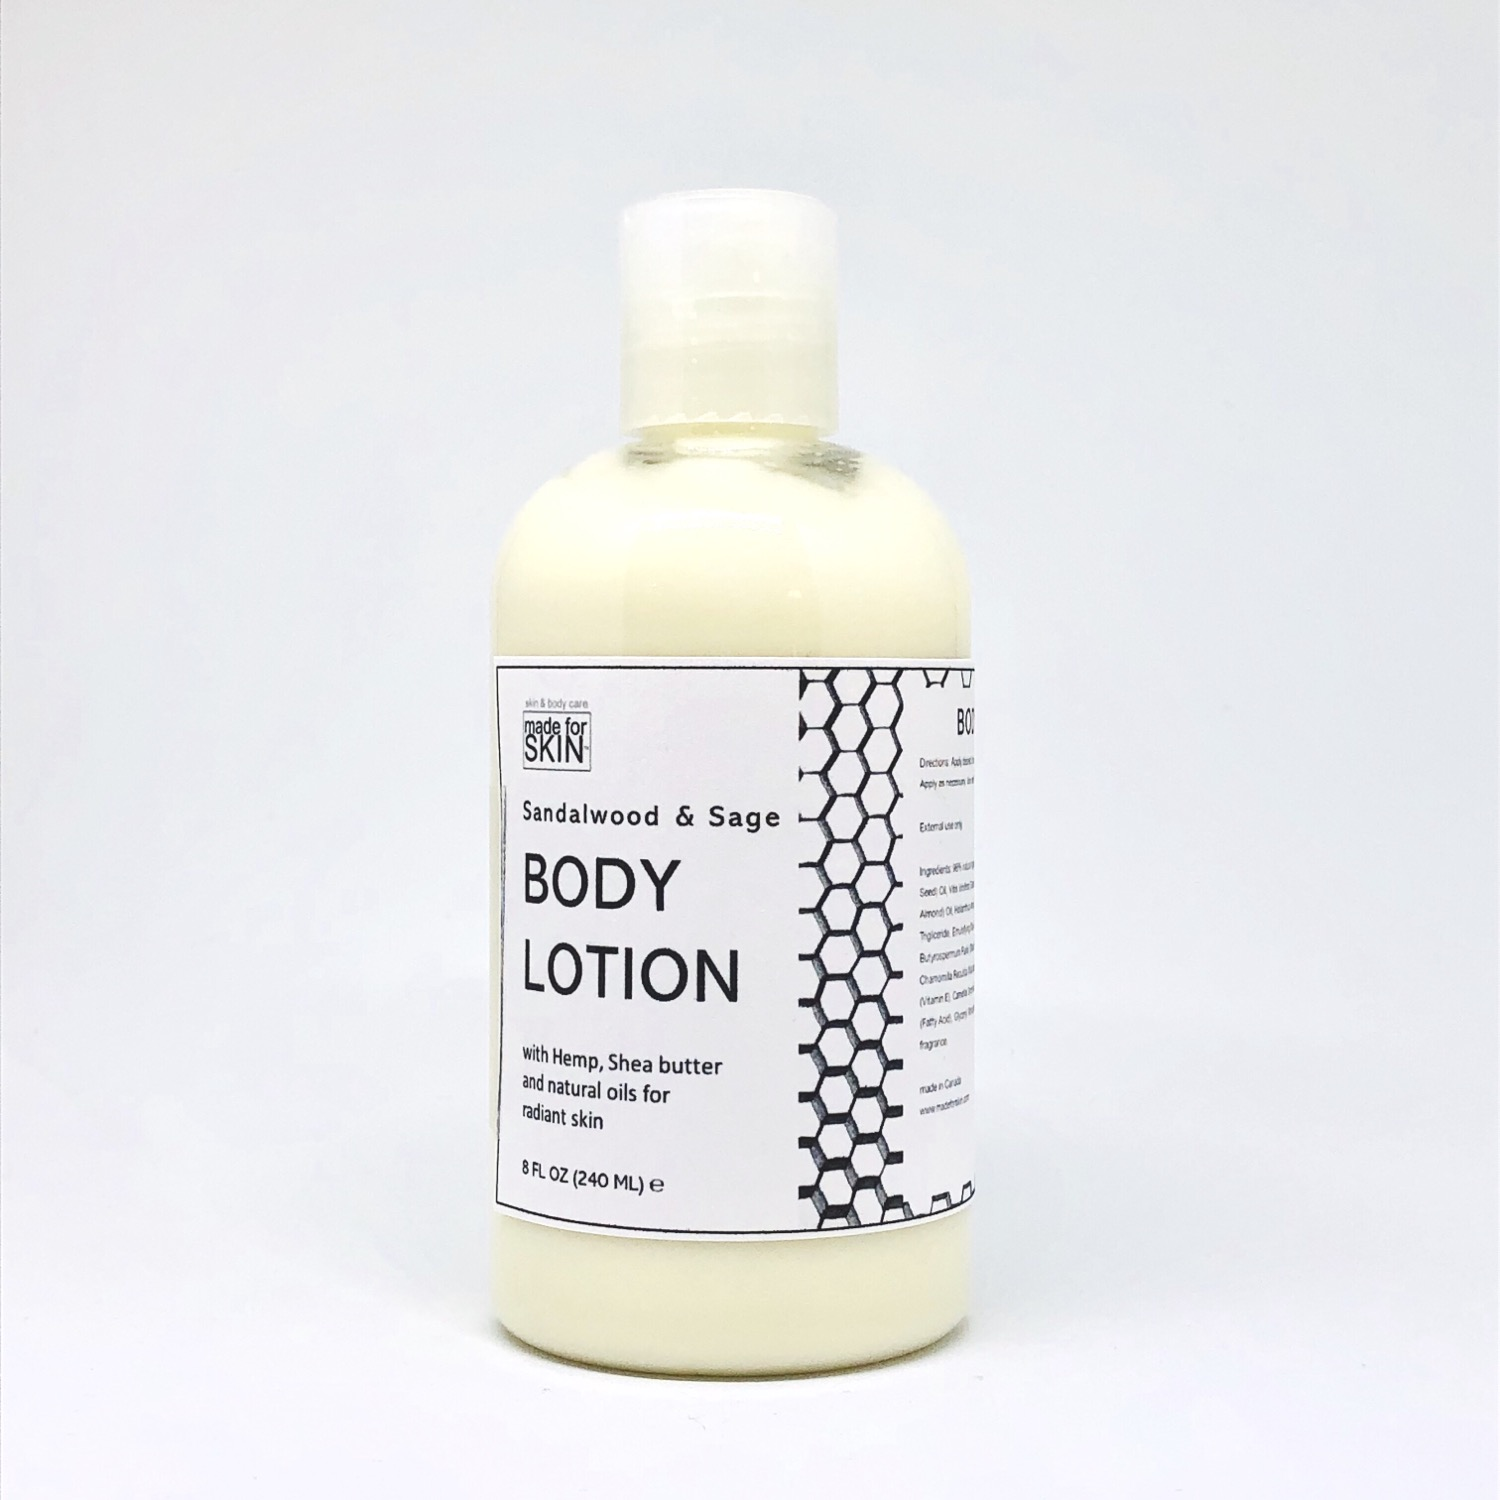 Hemp Sandalwood and Sage Body Lotion | made for SKIN